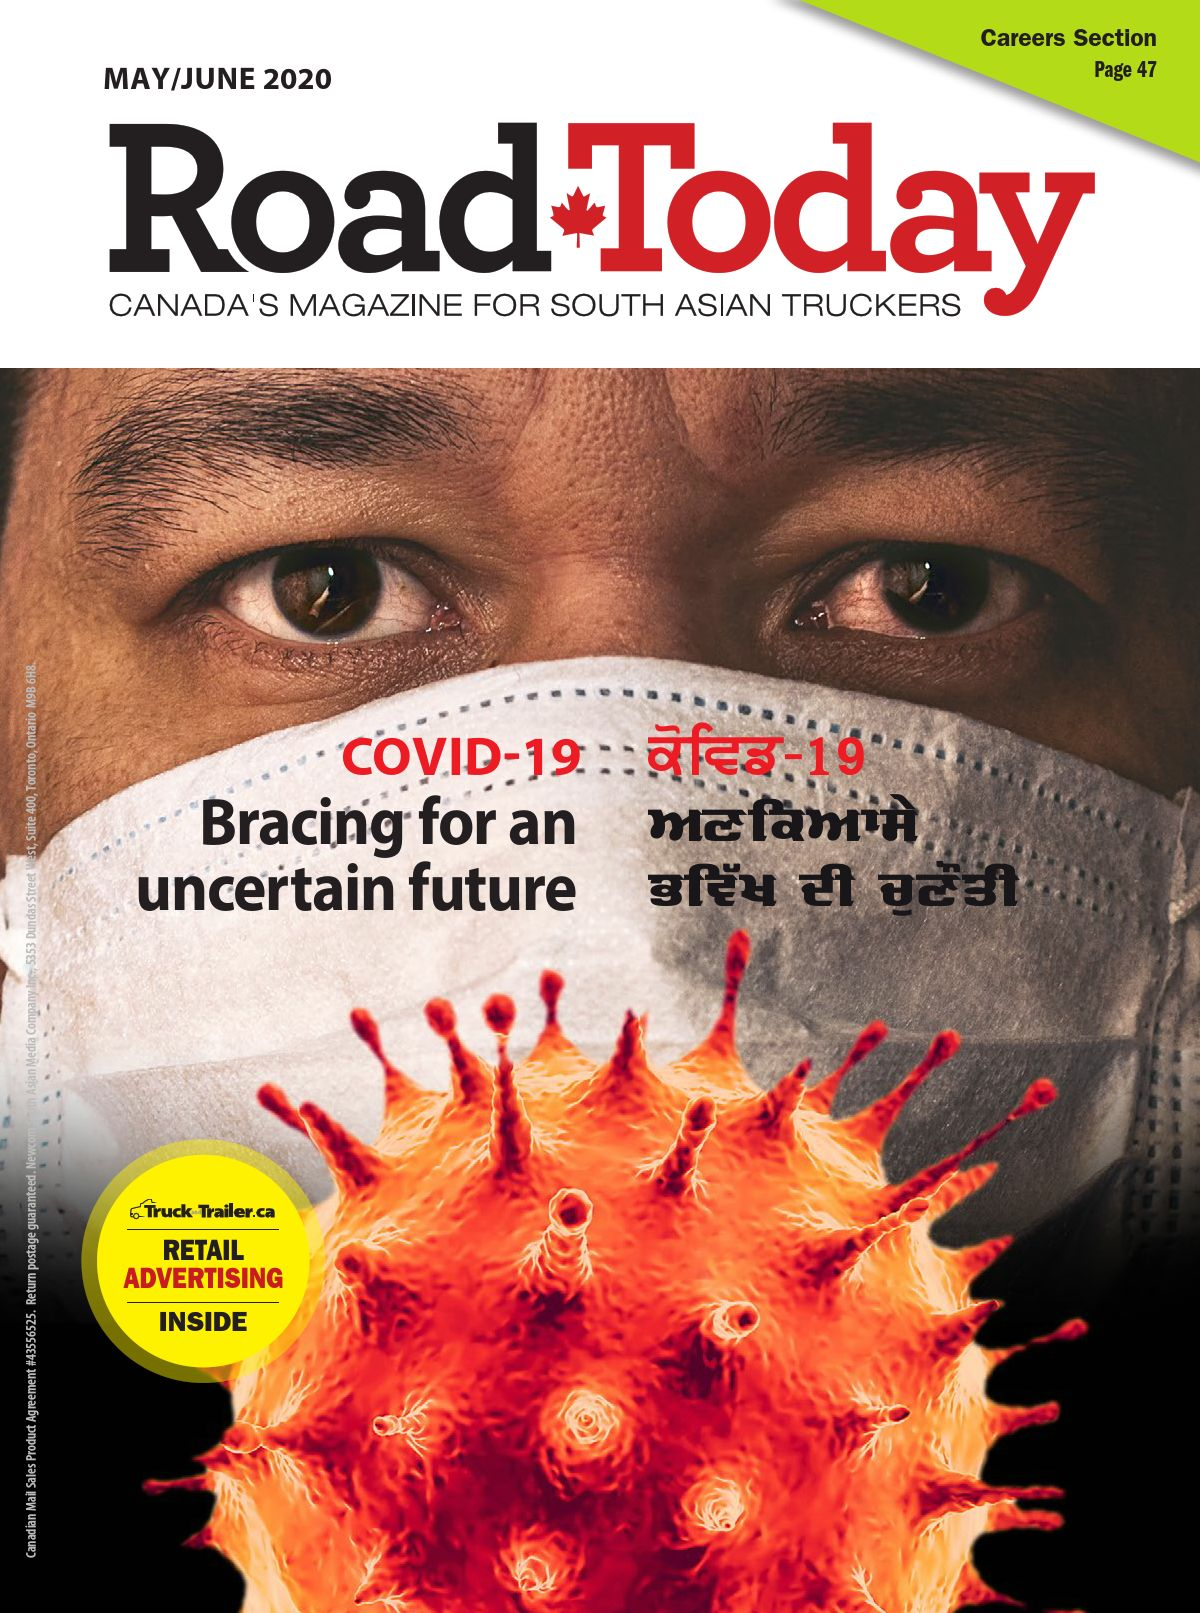 Road Today – May / June 2020